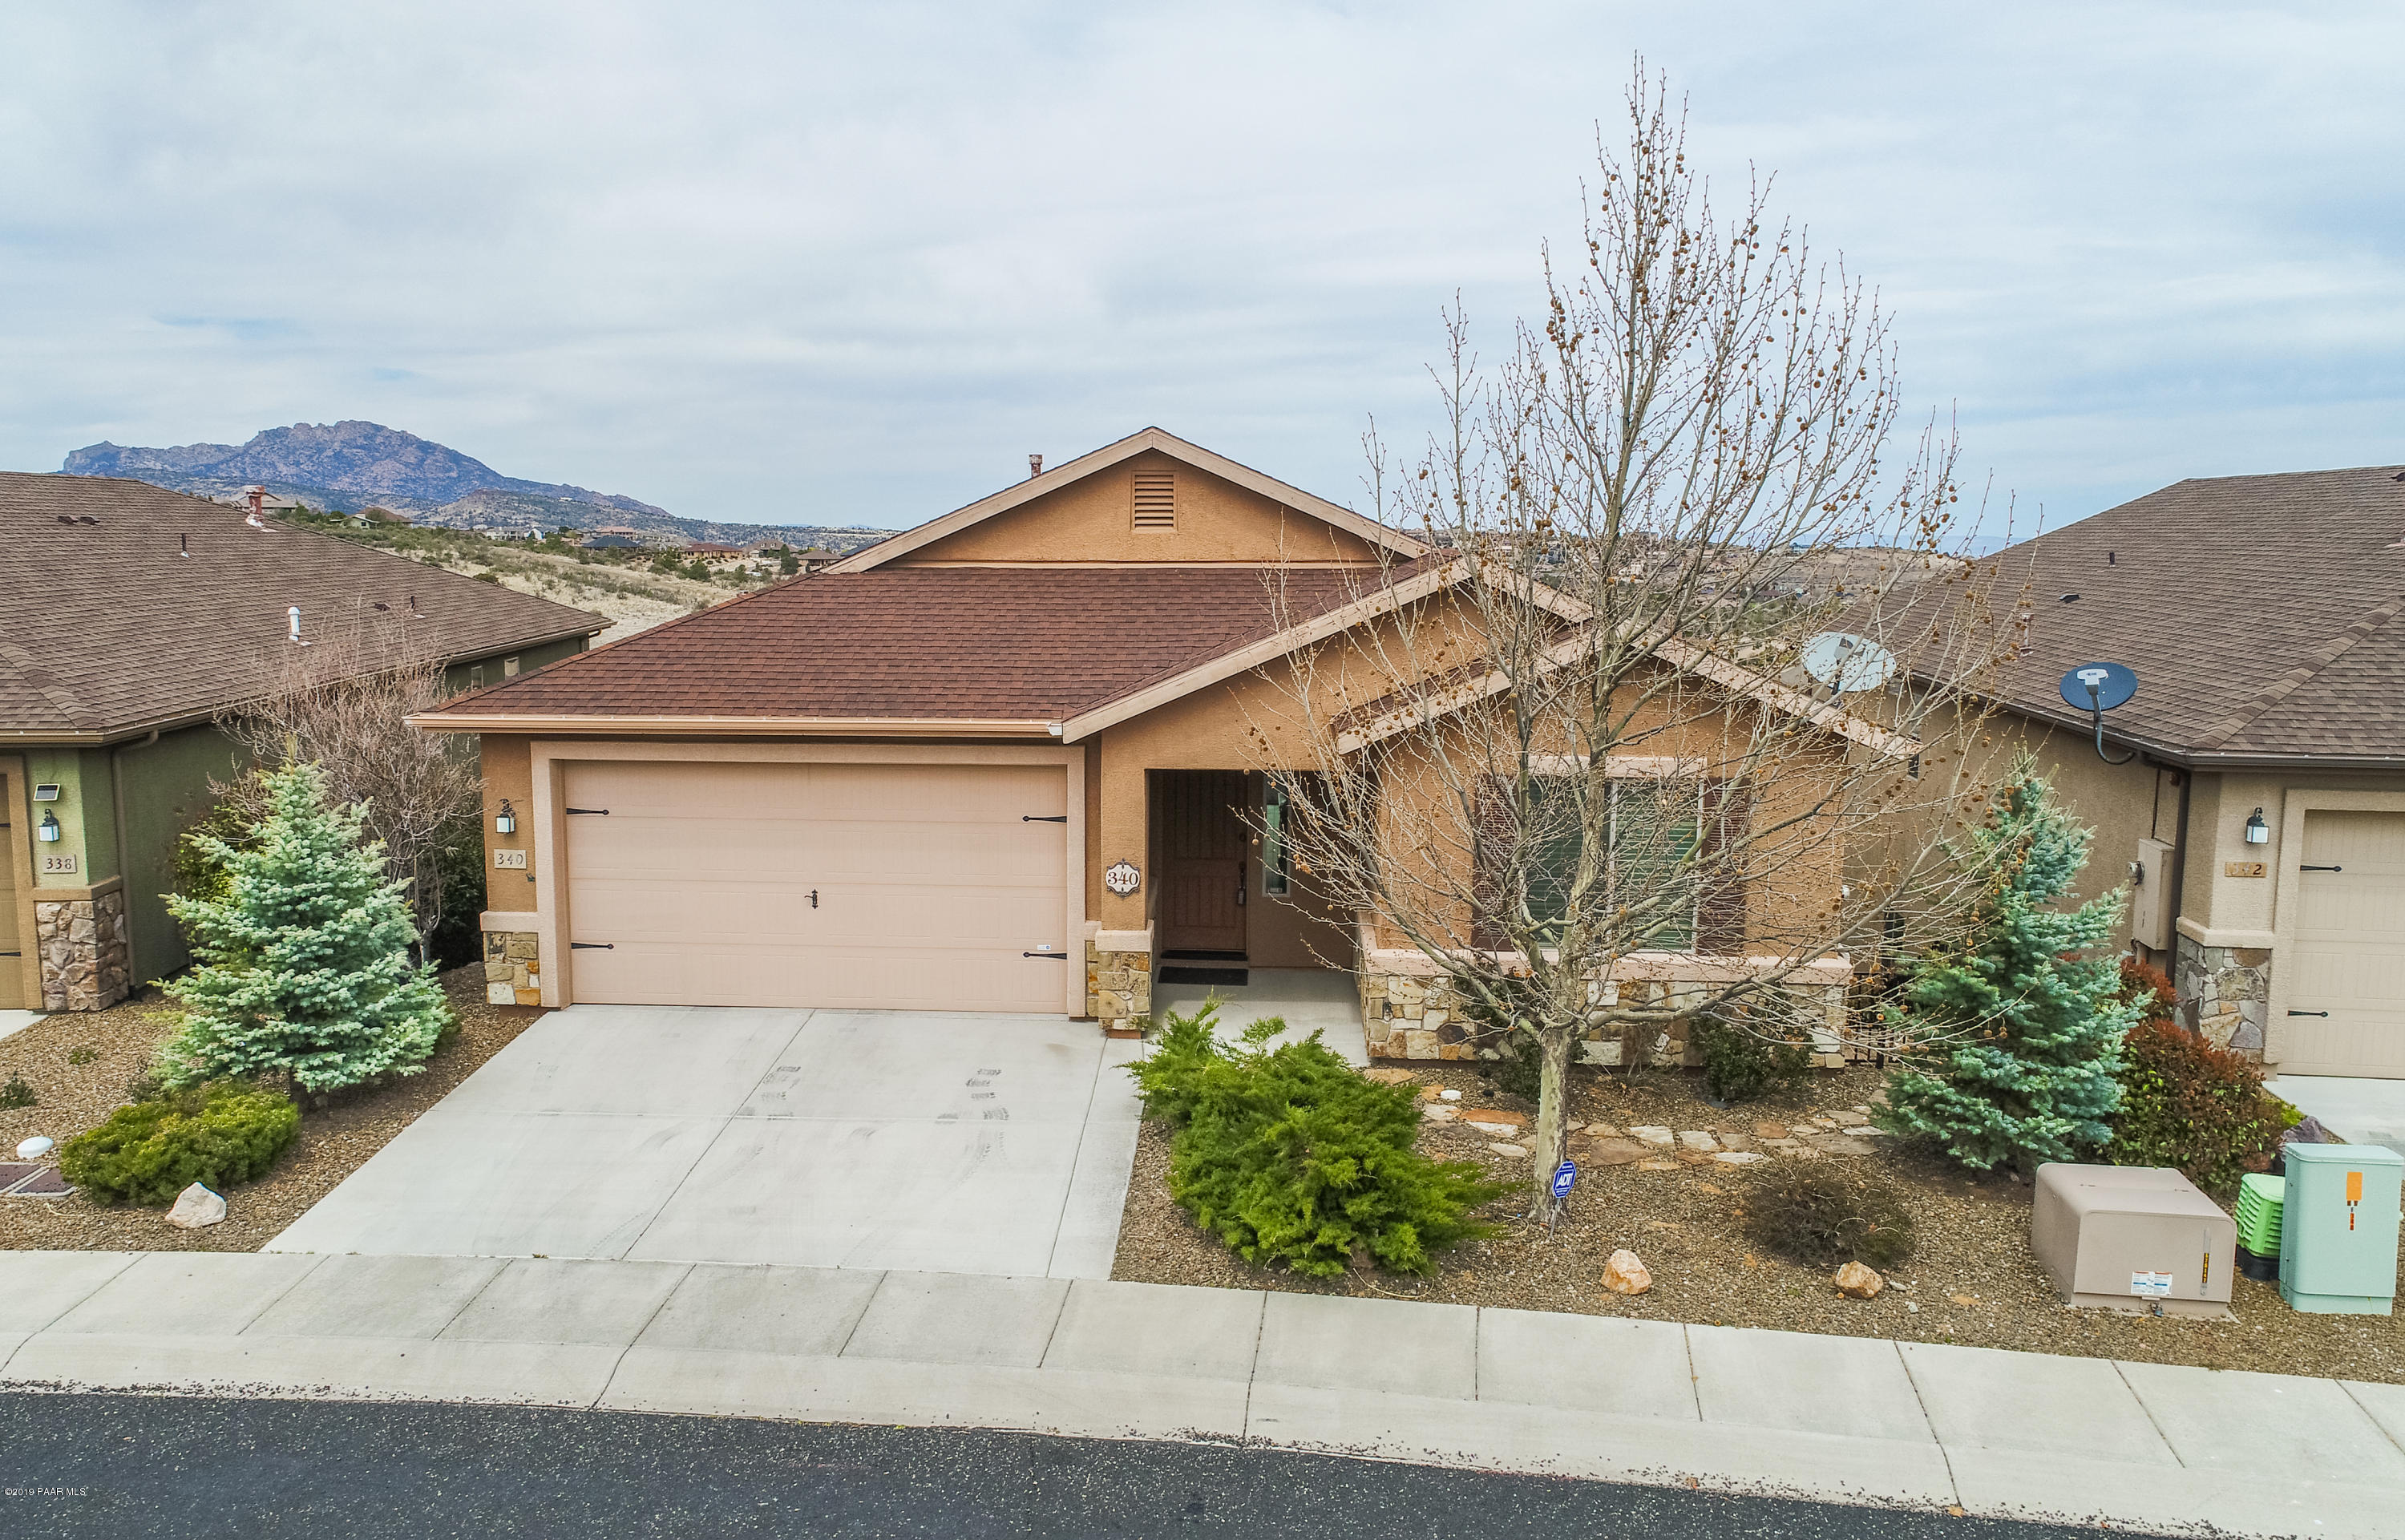 Photo of 340 Breezy, Prescott, AZ 86301